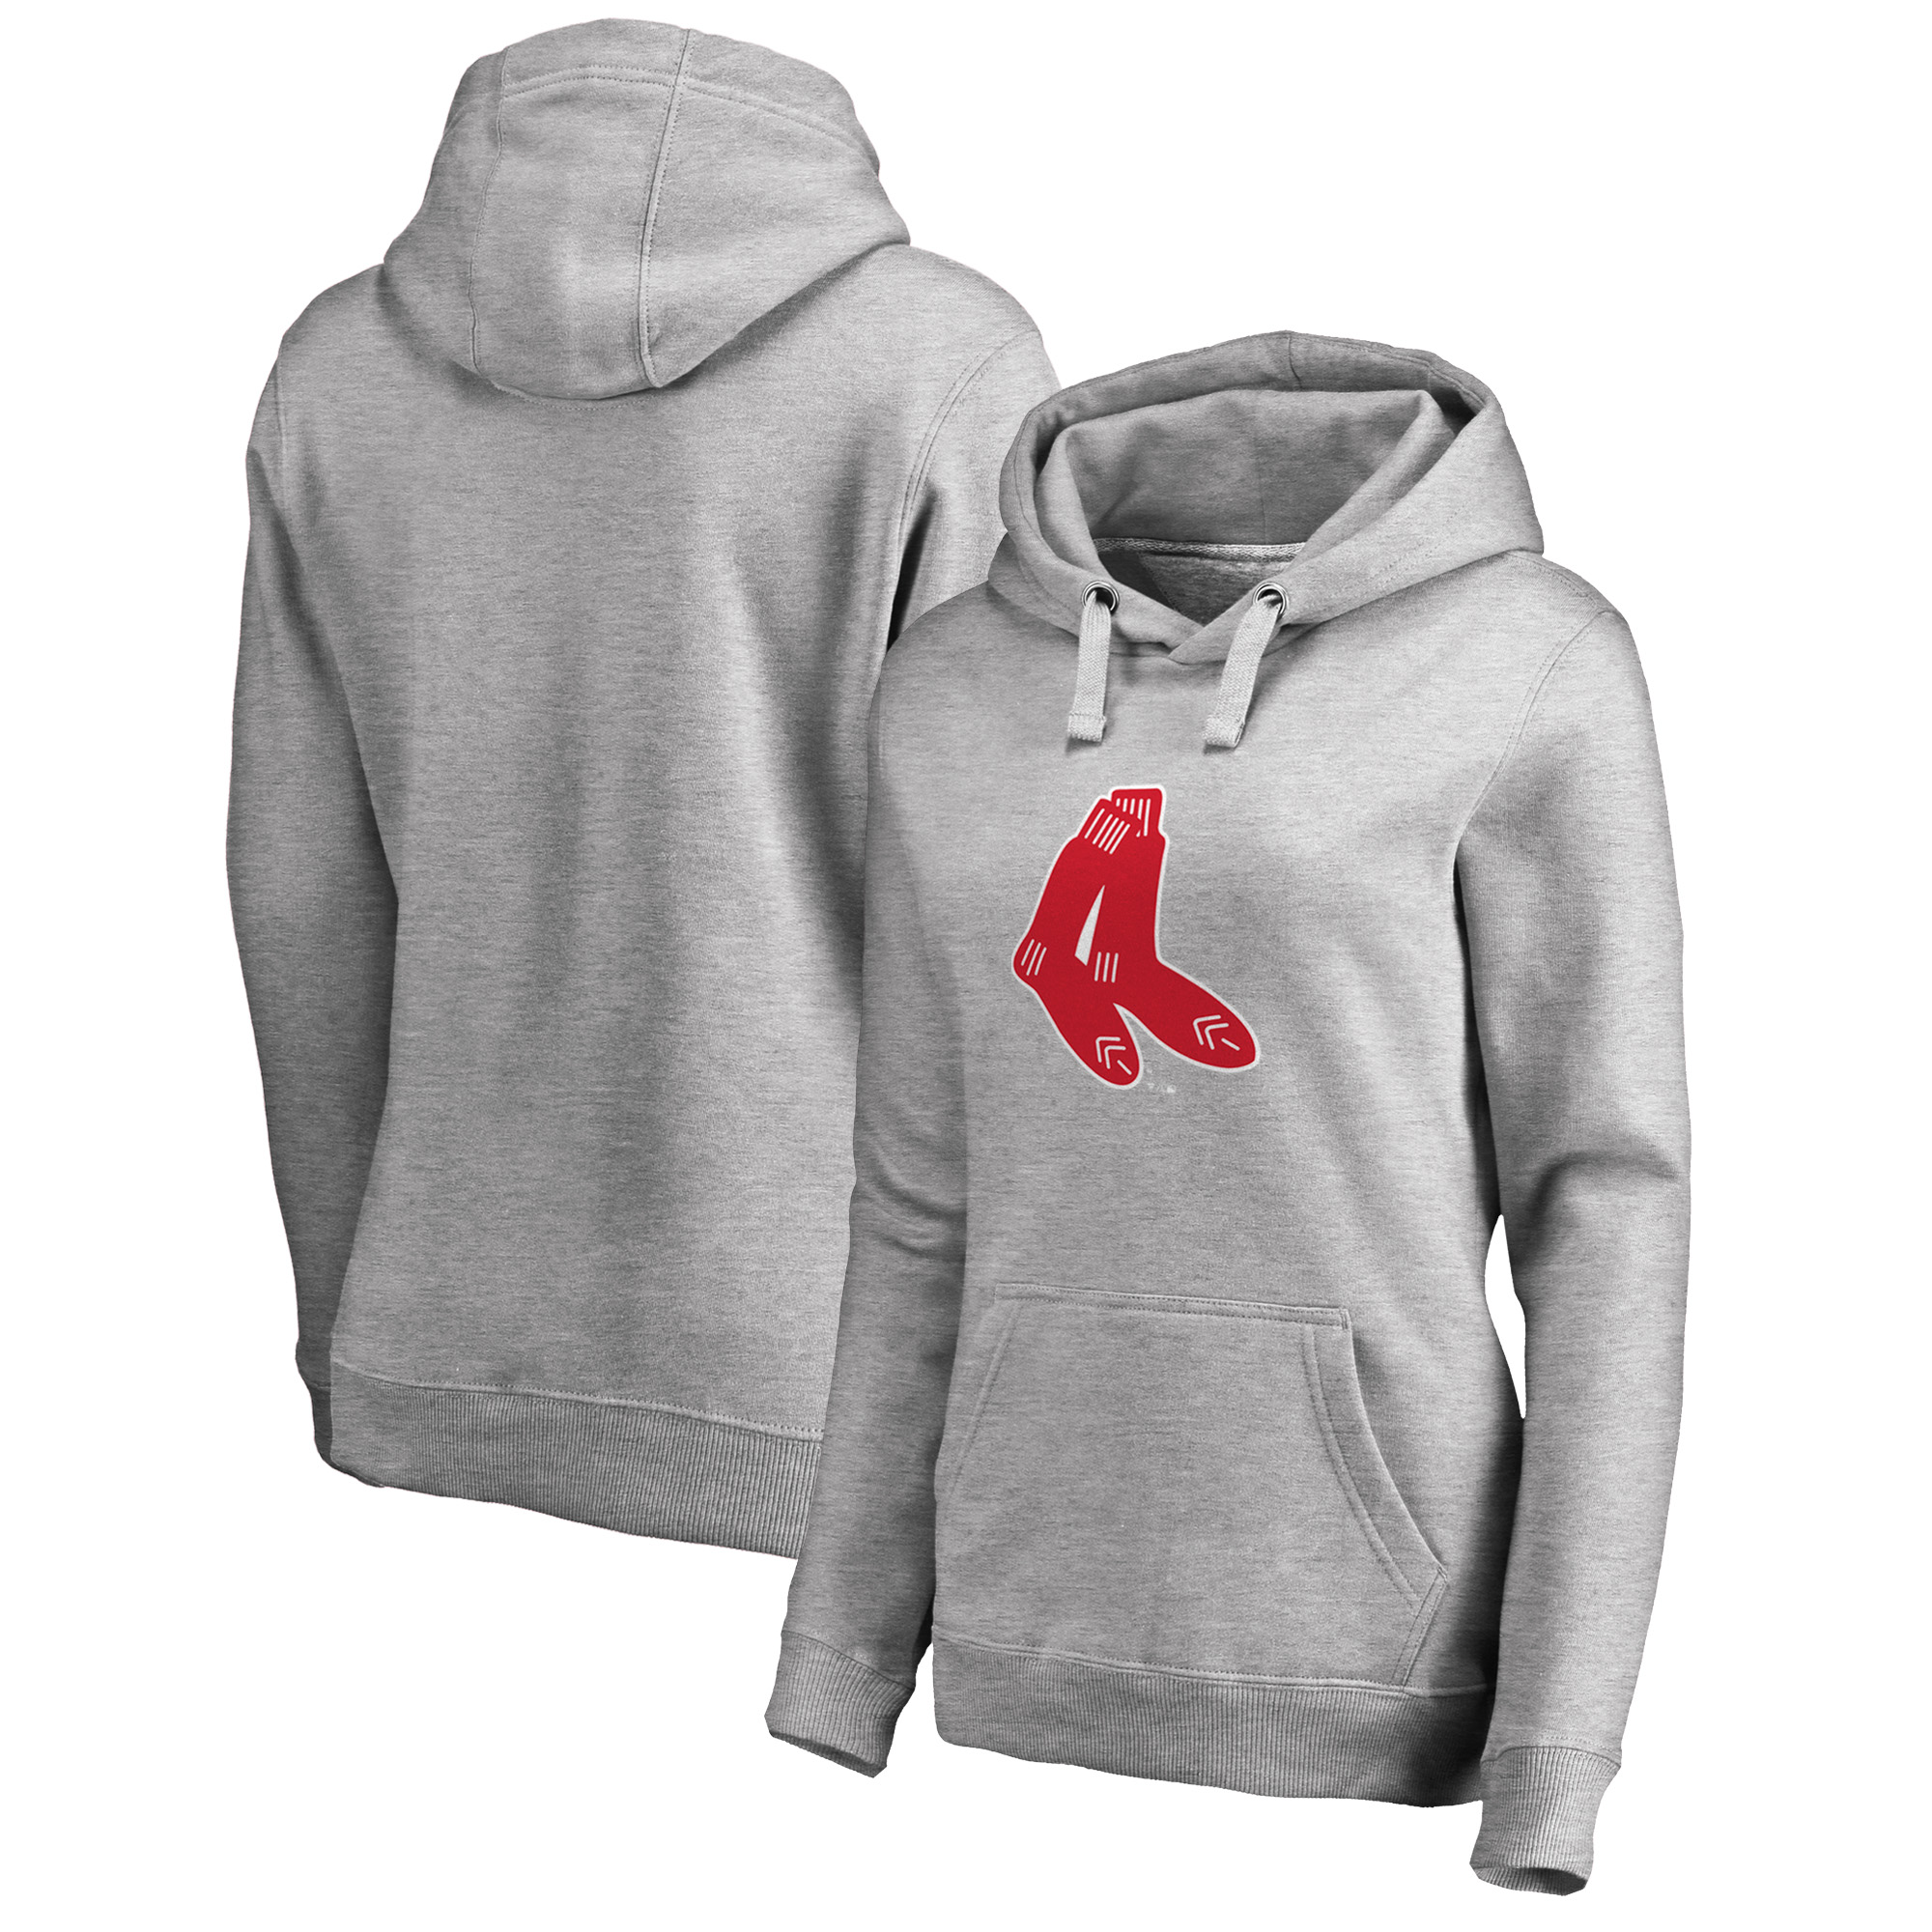 Boston Red Sox Fanatics Branded Women's Cooperstown Collection Huntington Pullover Hoodie - Heathered Gray